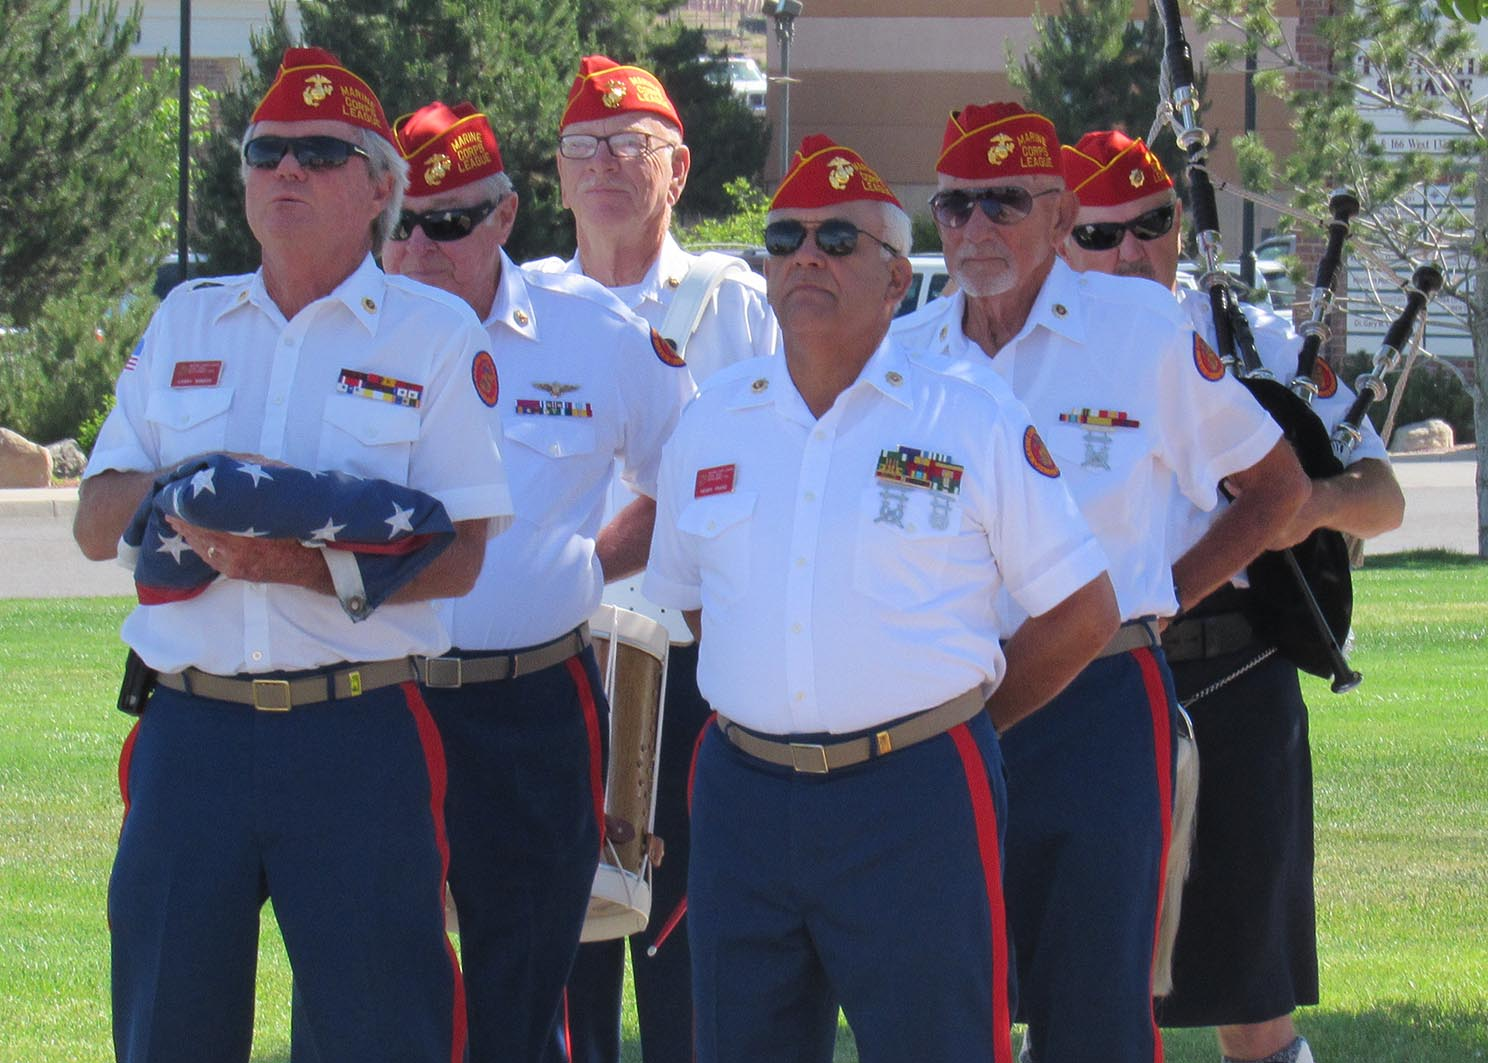 L-R: Larry Mineer, Dave Waters, Terry Hansen, Henry Franz, Gordon Farr,John Mayer; (D'Arcy Grisier not pictured). Color Detail from the Utah Dixie Detachment 1270 Marine Corps League awaits the signal to start for the nation's 100th Flag Day. Intermountain Healthcare's Cedar City Hospital, Cedar City, Utah, June 14, 2016 | Photo courtesy of William Fortune, Utah Dixie Detachment 1270, Marine Corps League St. George; St. George News / Cedar City News